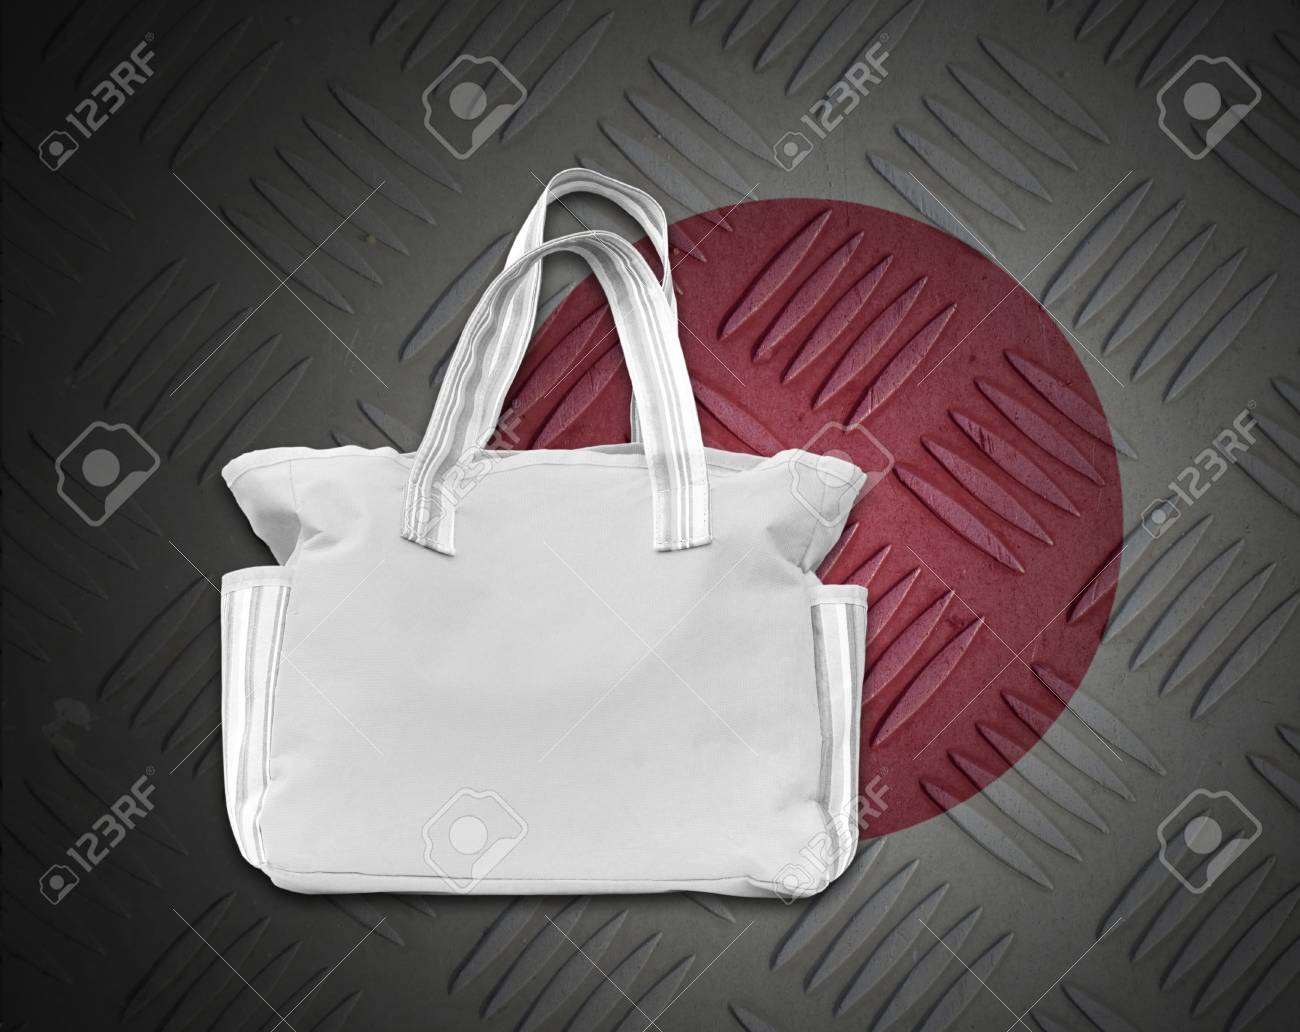 Environment concept from white cloth bag on background. Stock Photo - 15273254